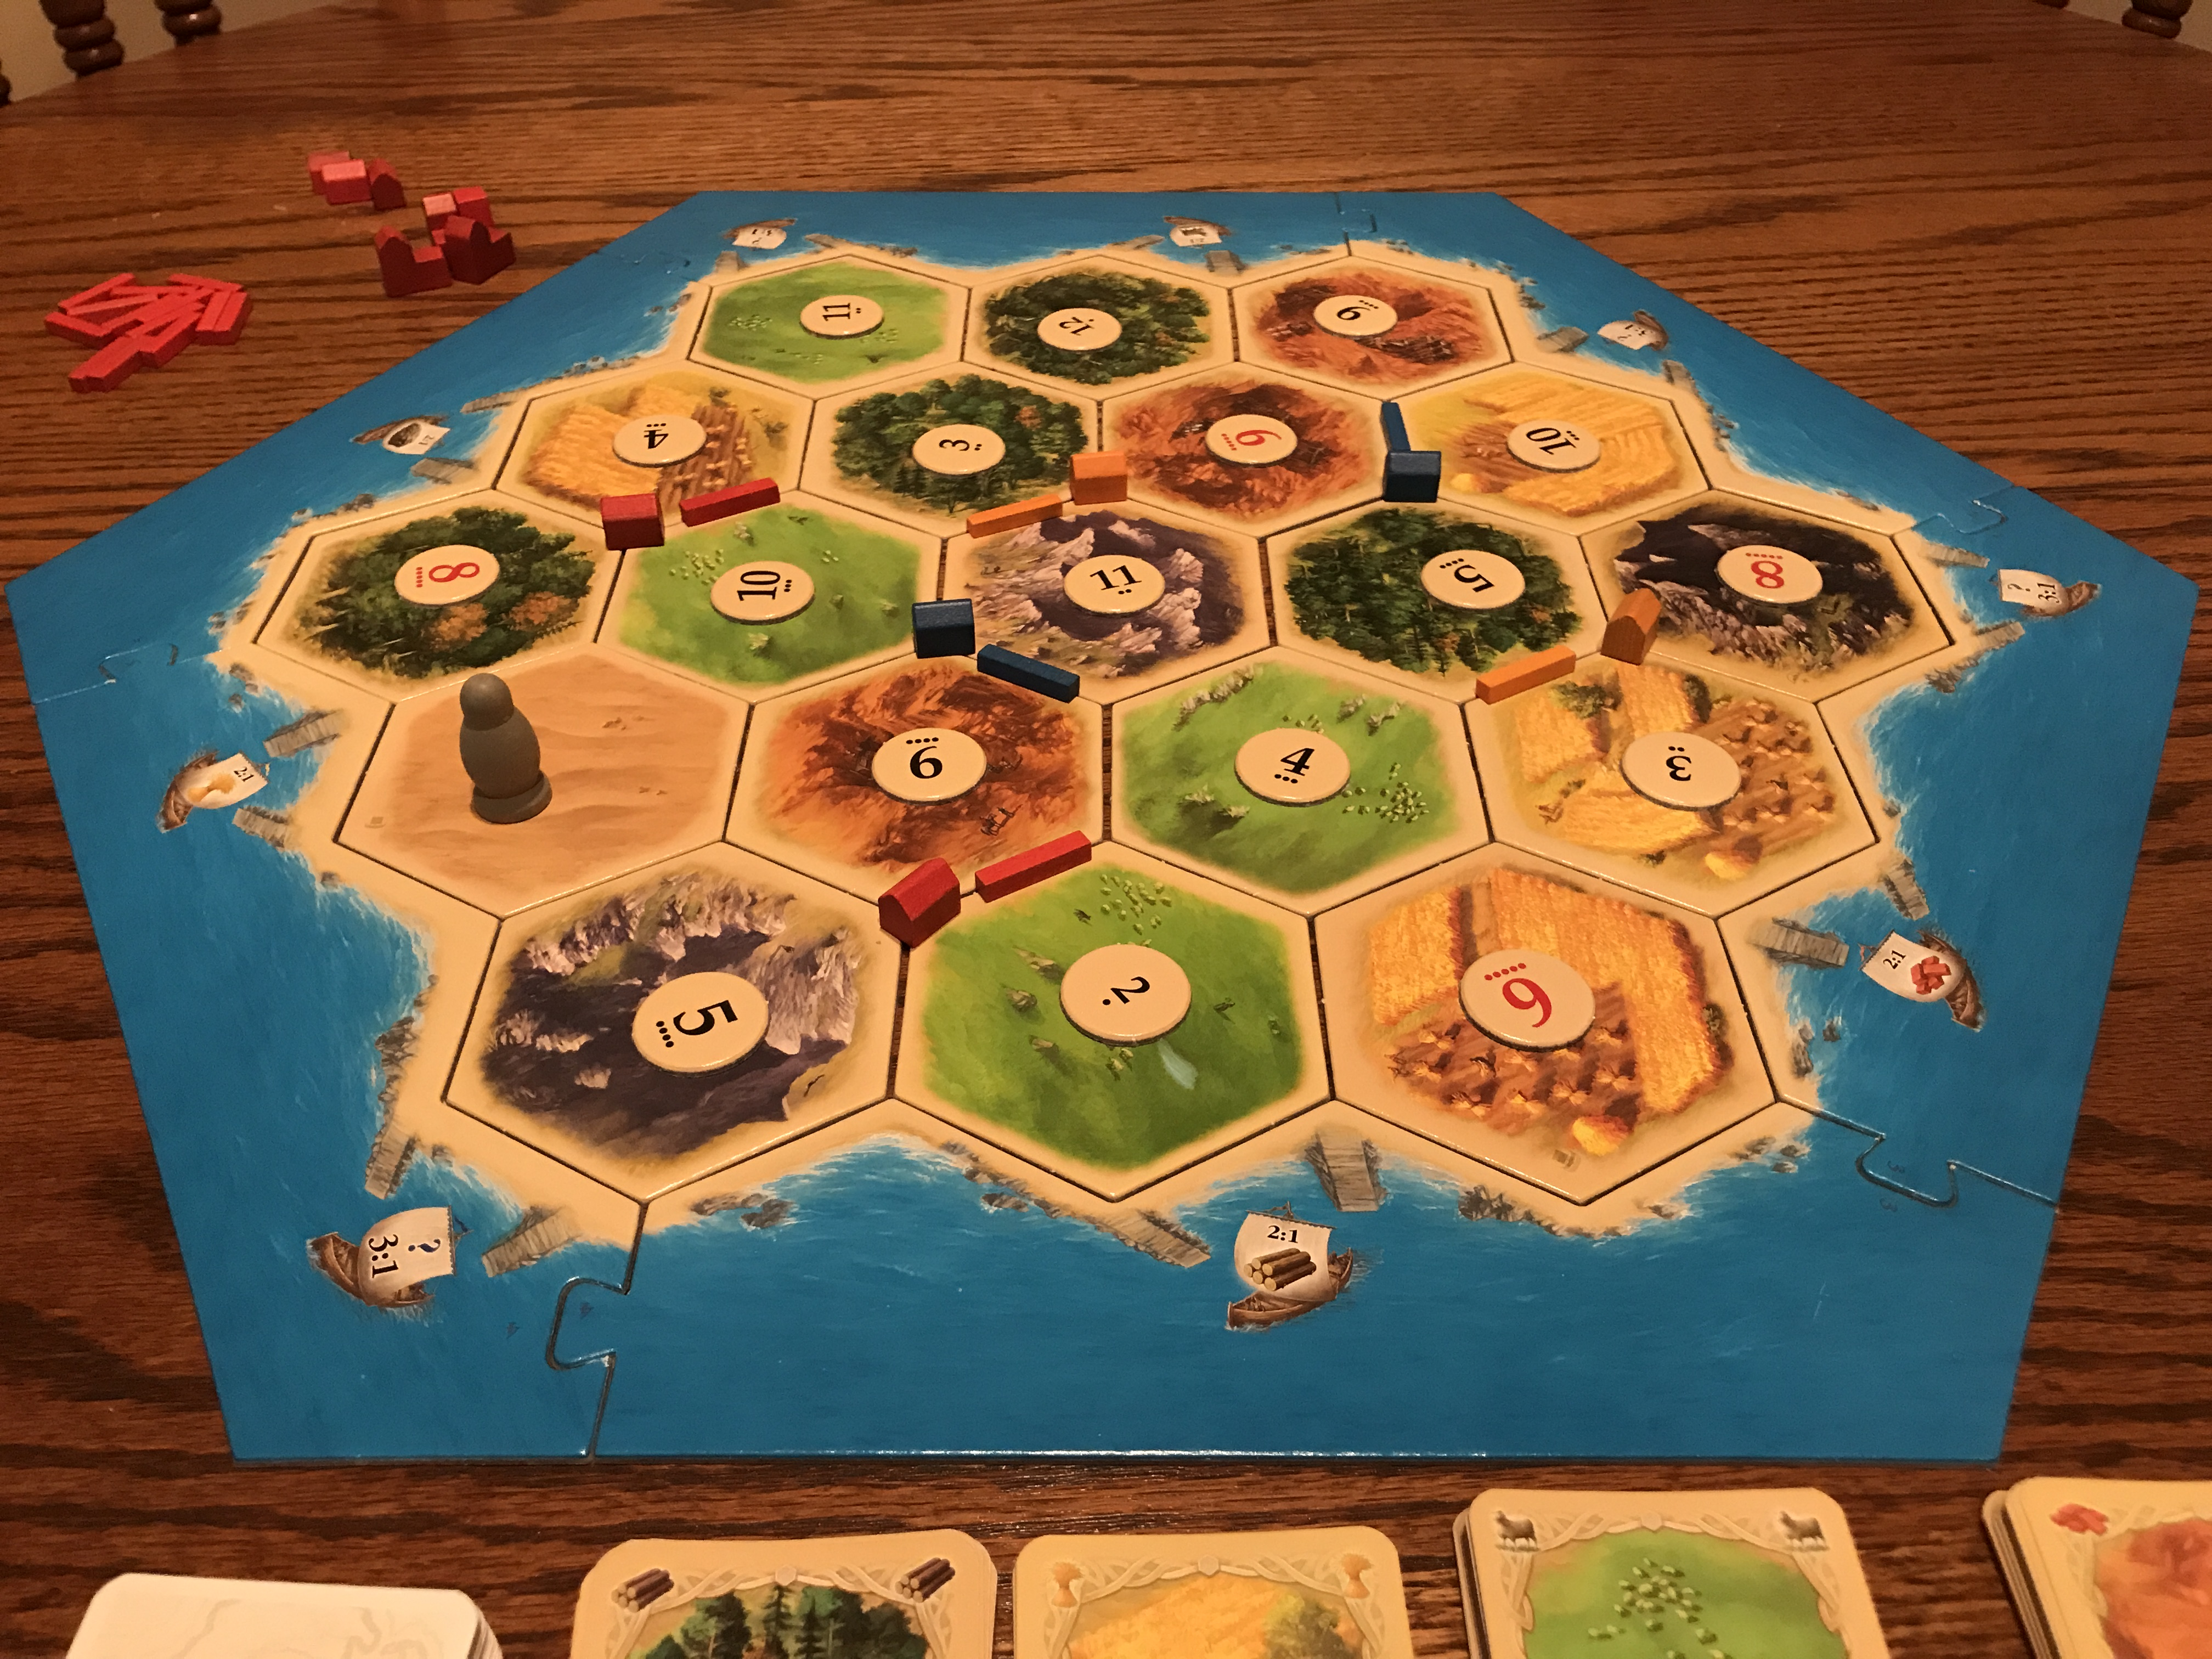 5 Best Settlers of Catan Strategies | The Board Game Guide